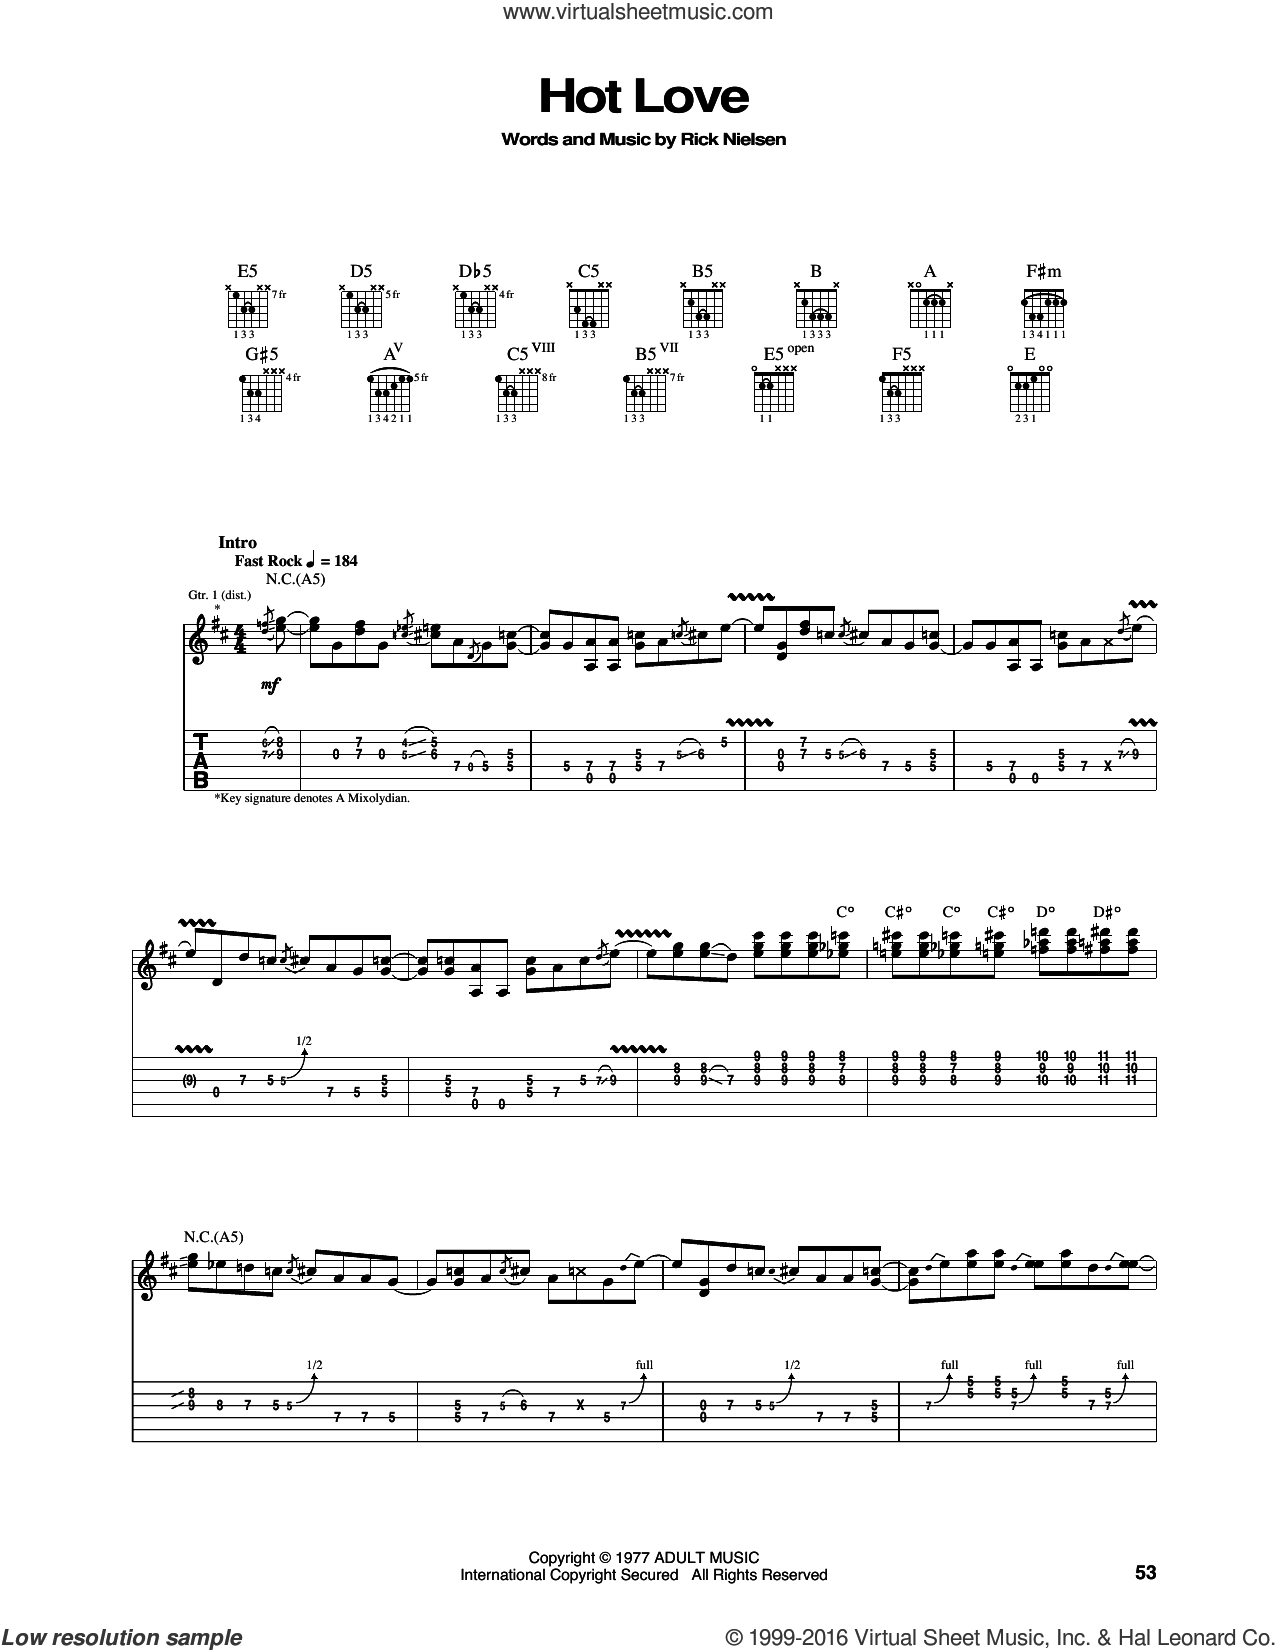 Hot Love sheet music for guitar (tablature) by Rick Nielsen